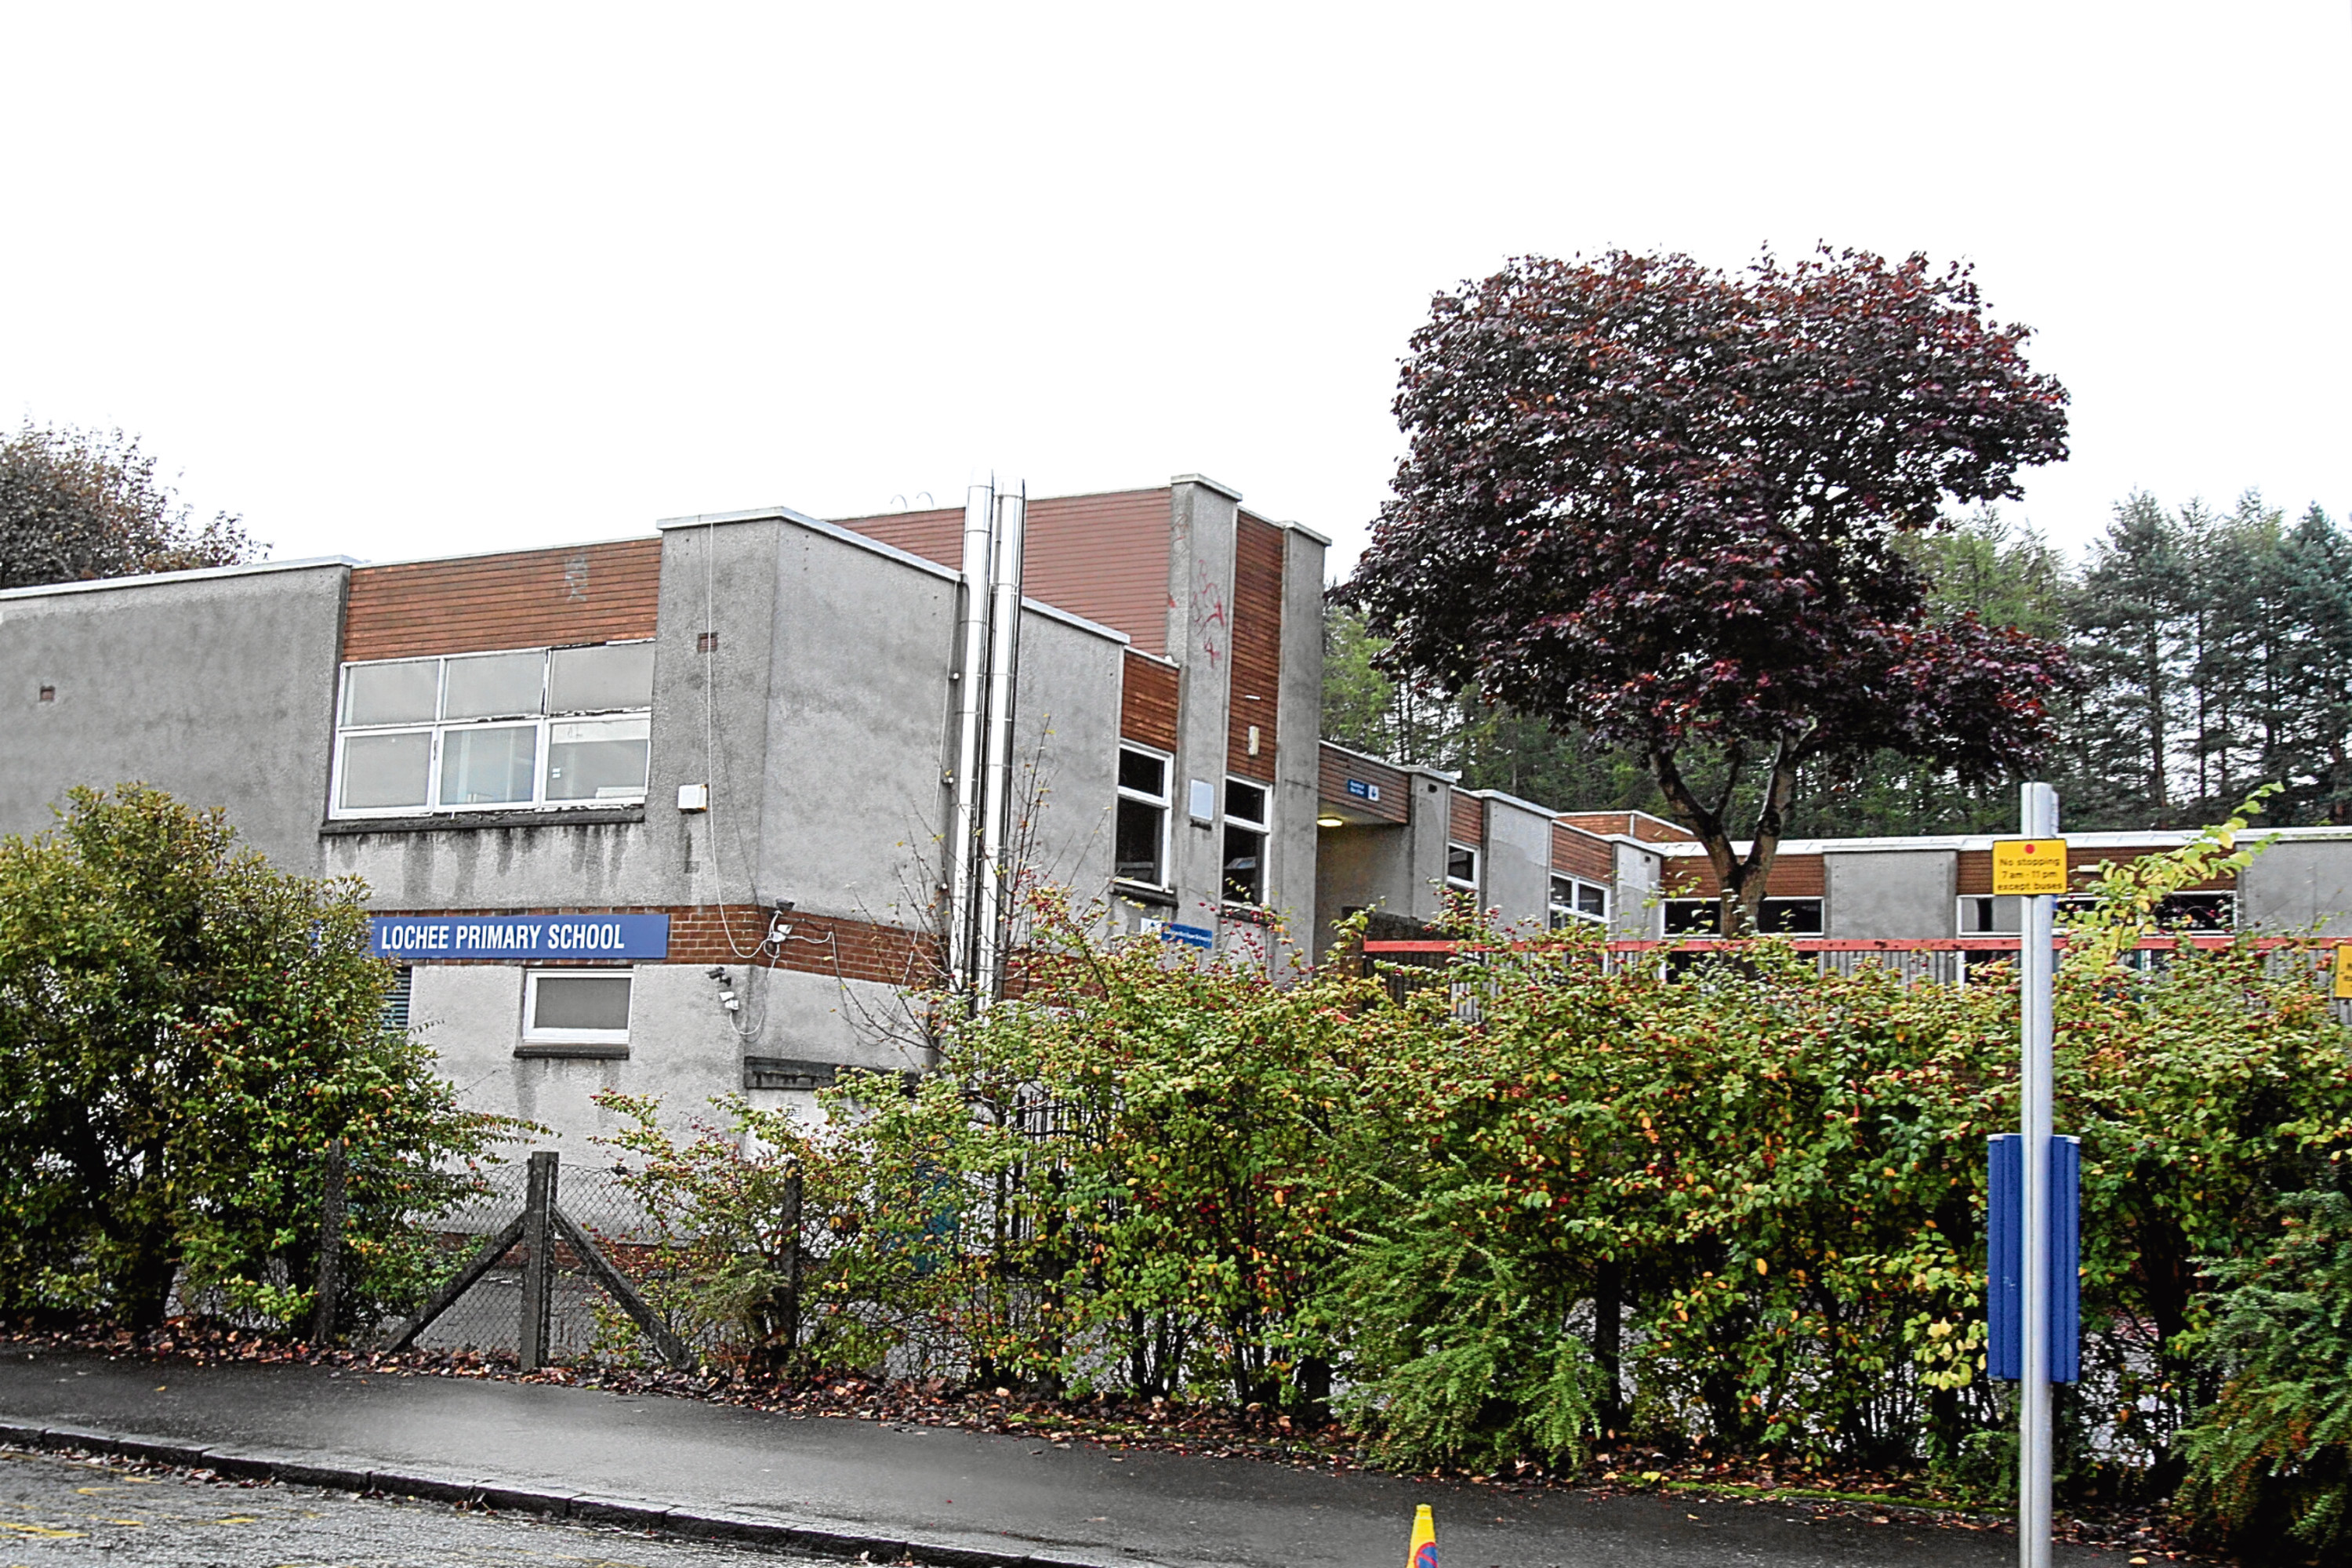 The former Lochee Primary building.